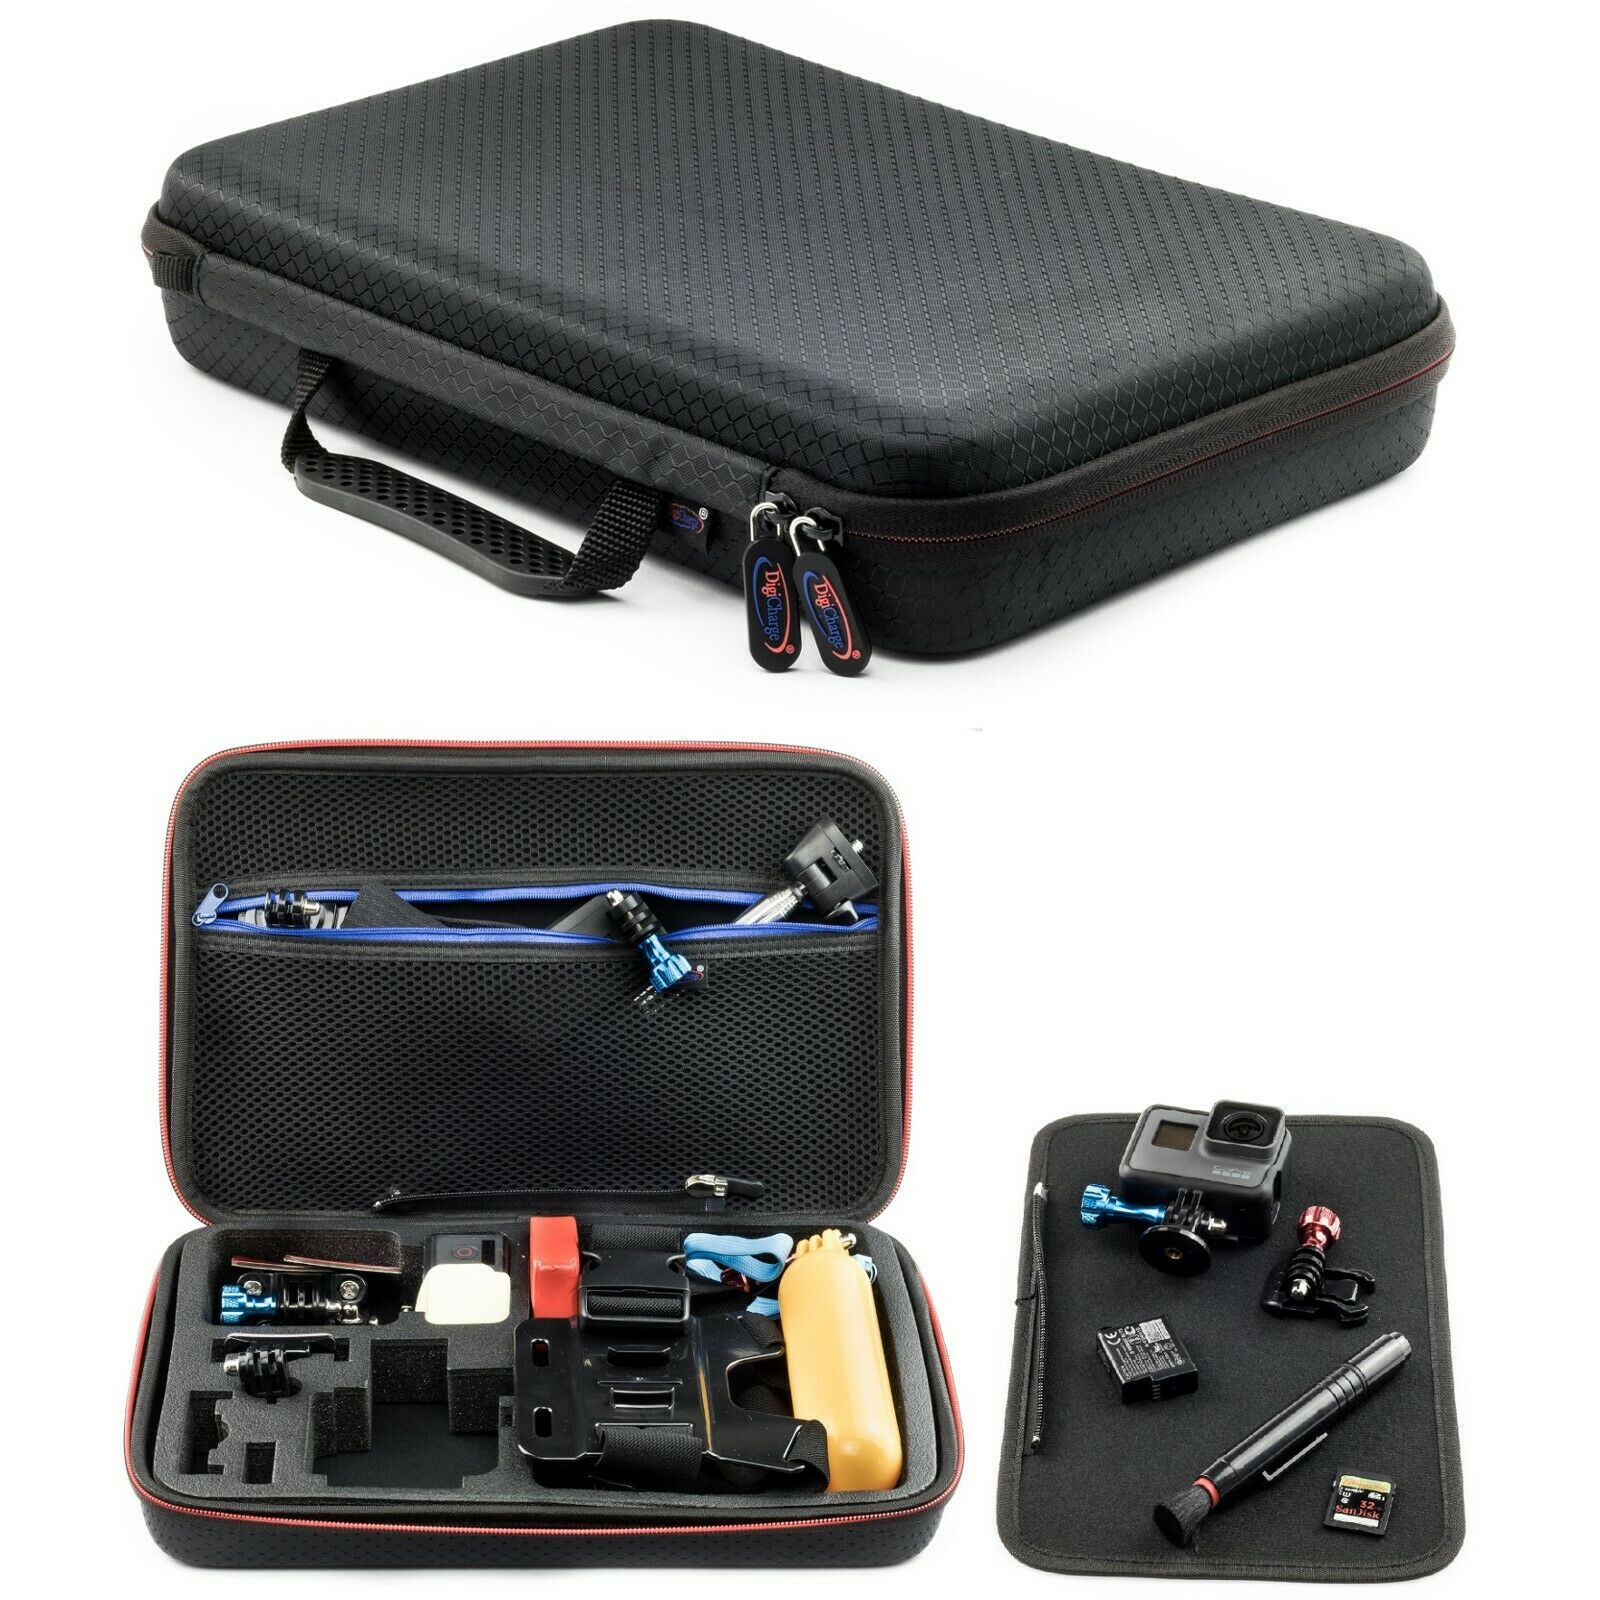 Carry Travel Case For Xiaomi Yi 4k Wifi 2 Ii Action Camera Large Size Cam 1 Of 7free Shipping See More